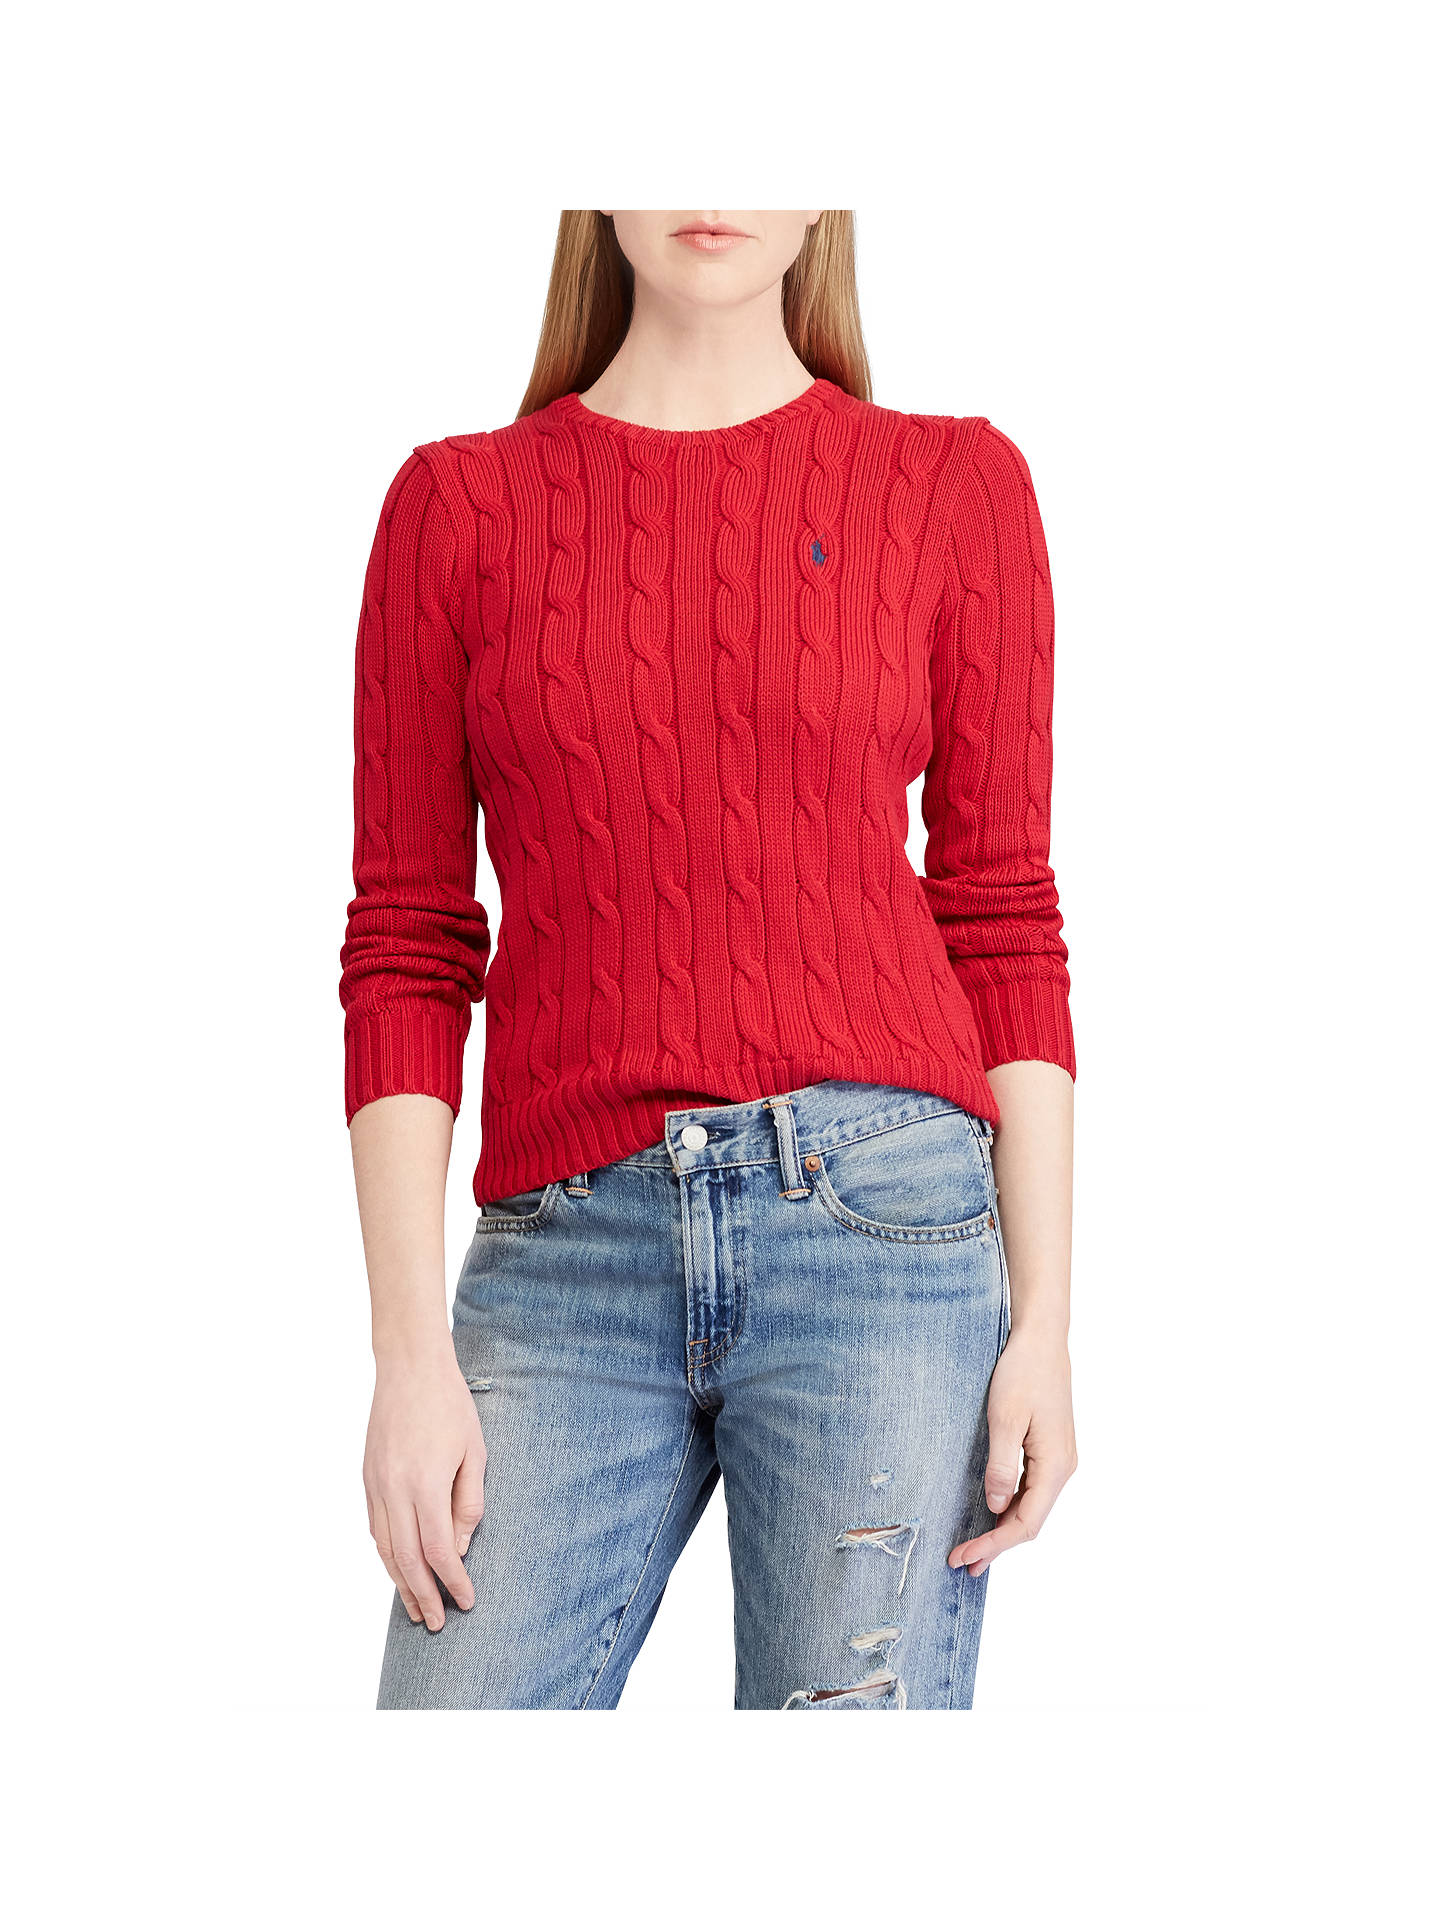 BuyPolo Ralph Lauren Julianna Cable Knit Cotton Jumper, Red, XS Online at johnlewis.com